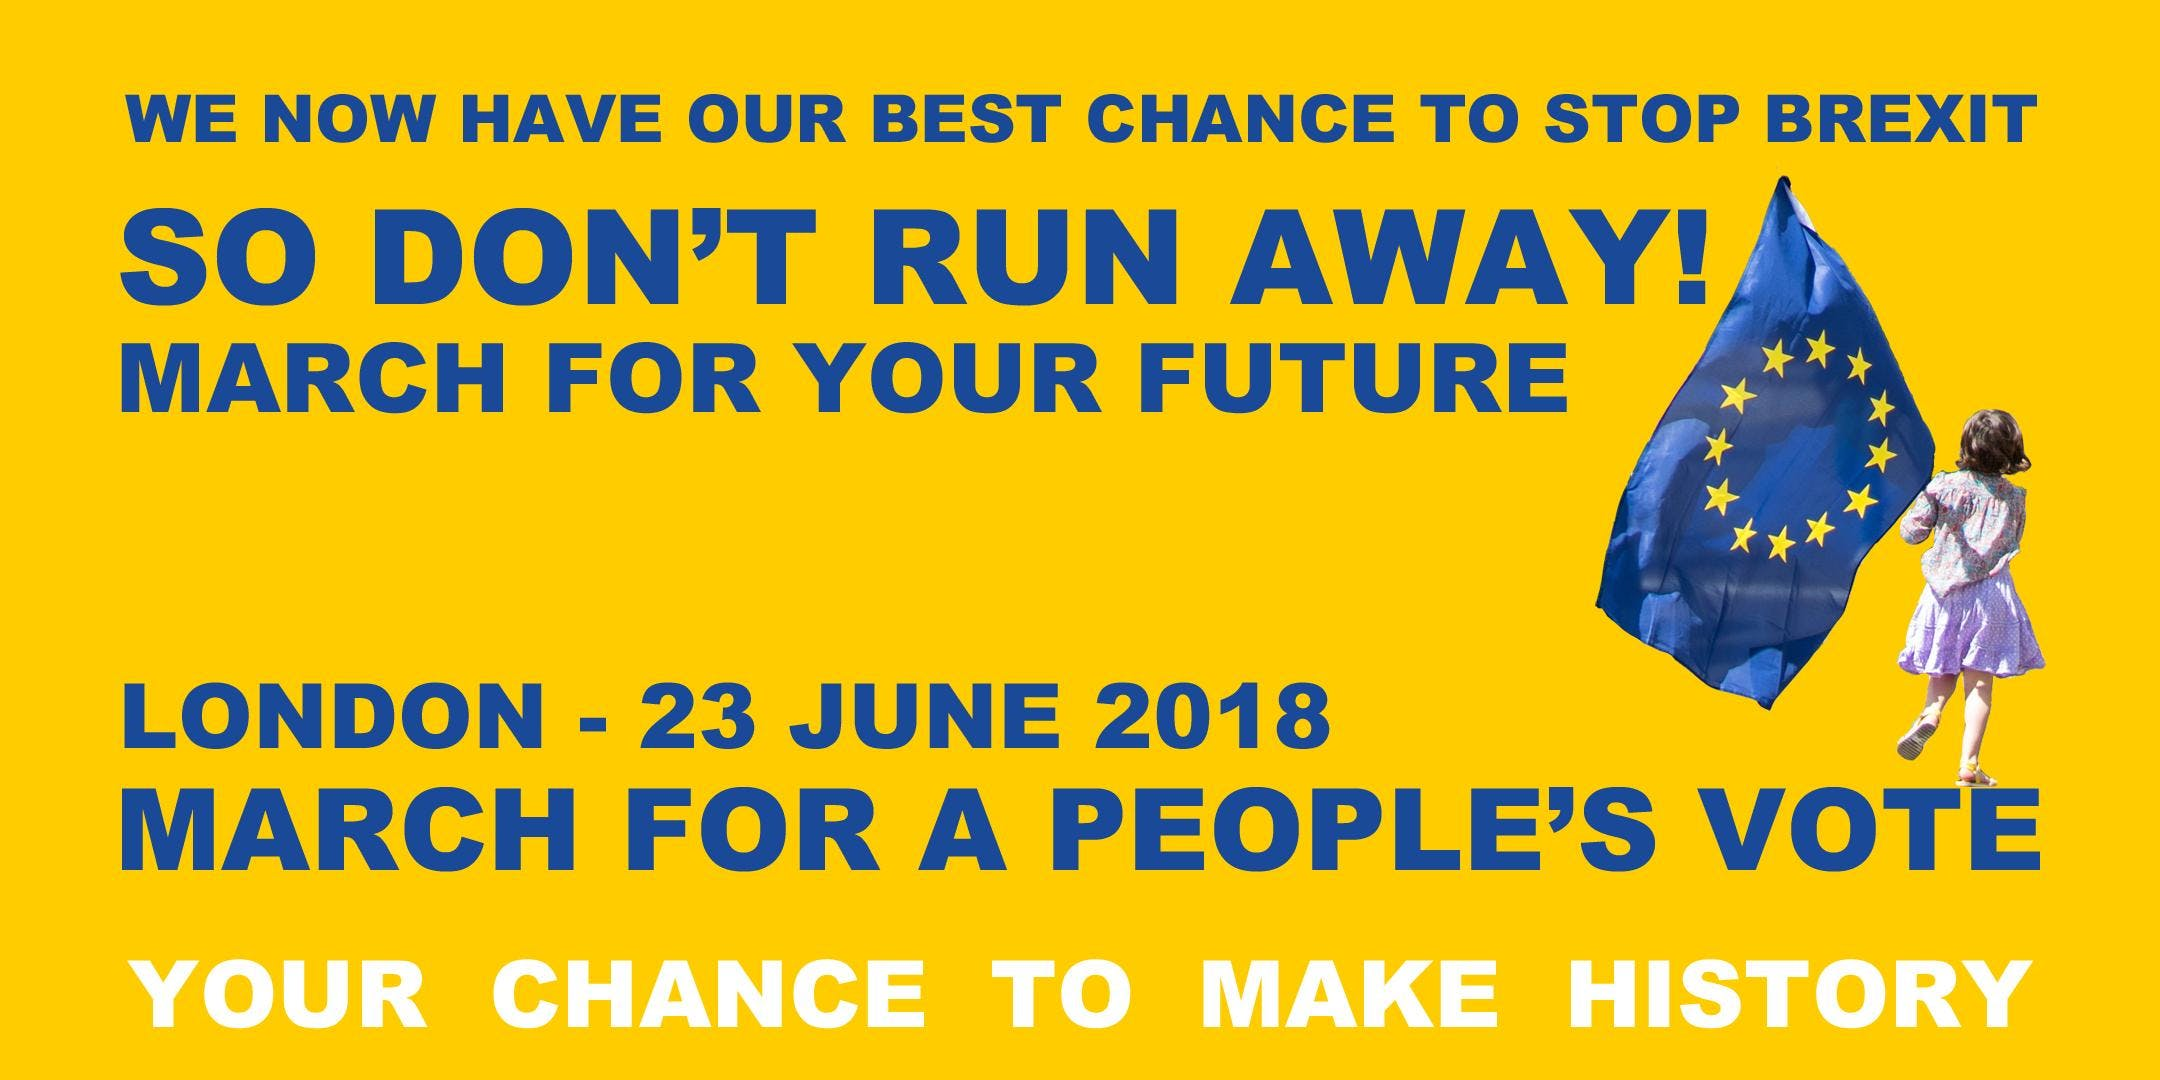 Coach Travel to London on Saturday 23 June - March for a Peoples Vote